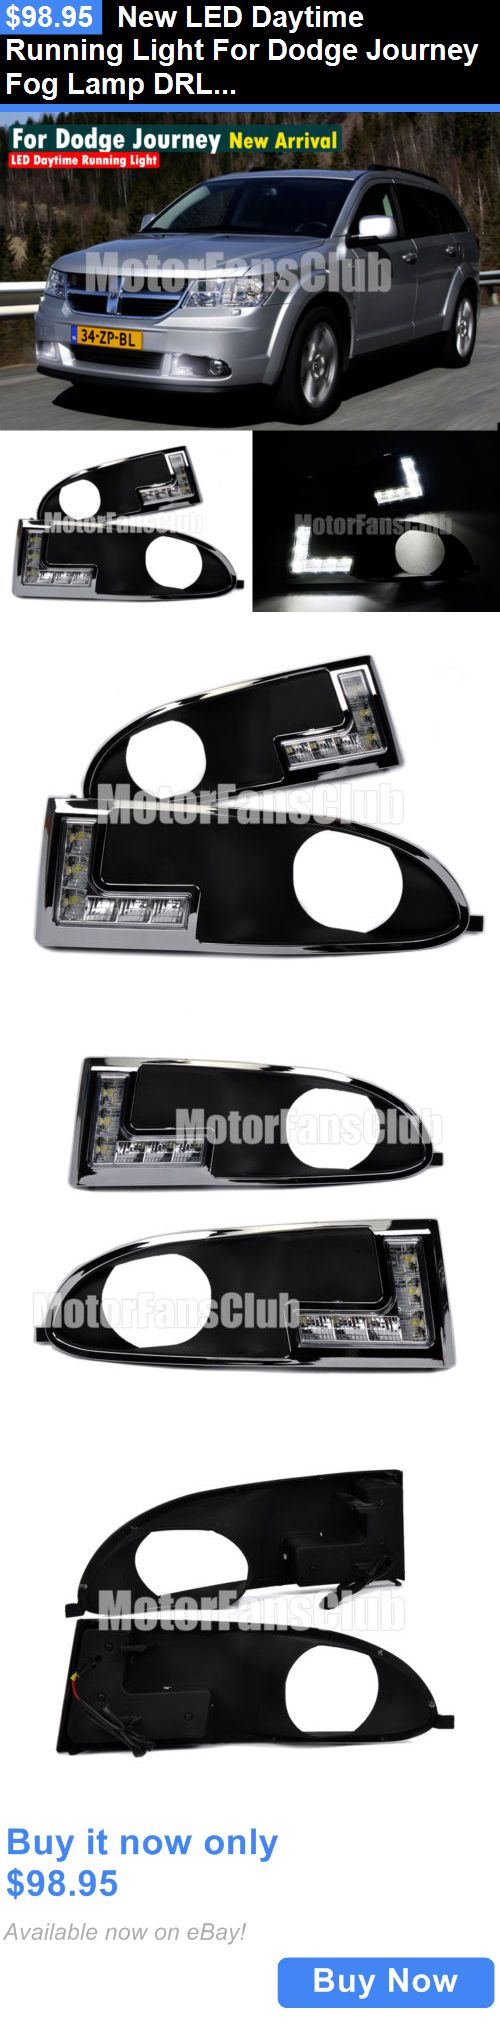 Motors parts and accessories new led daytime running light for dodge journey fog lamp drl